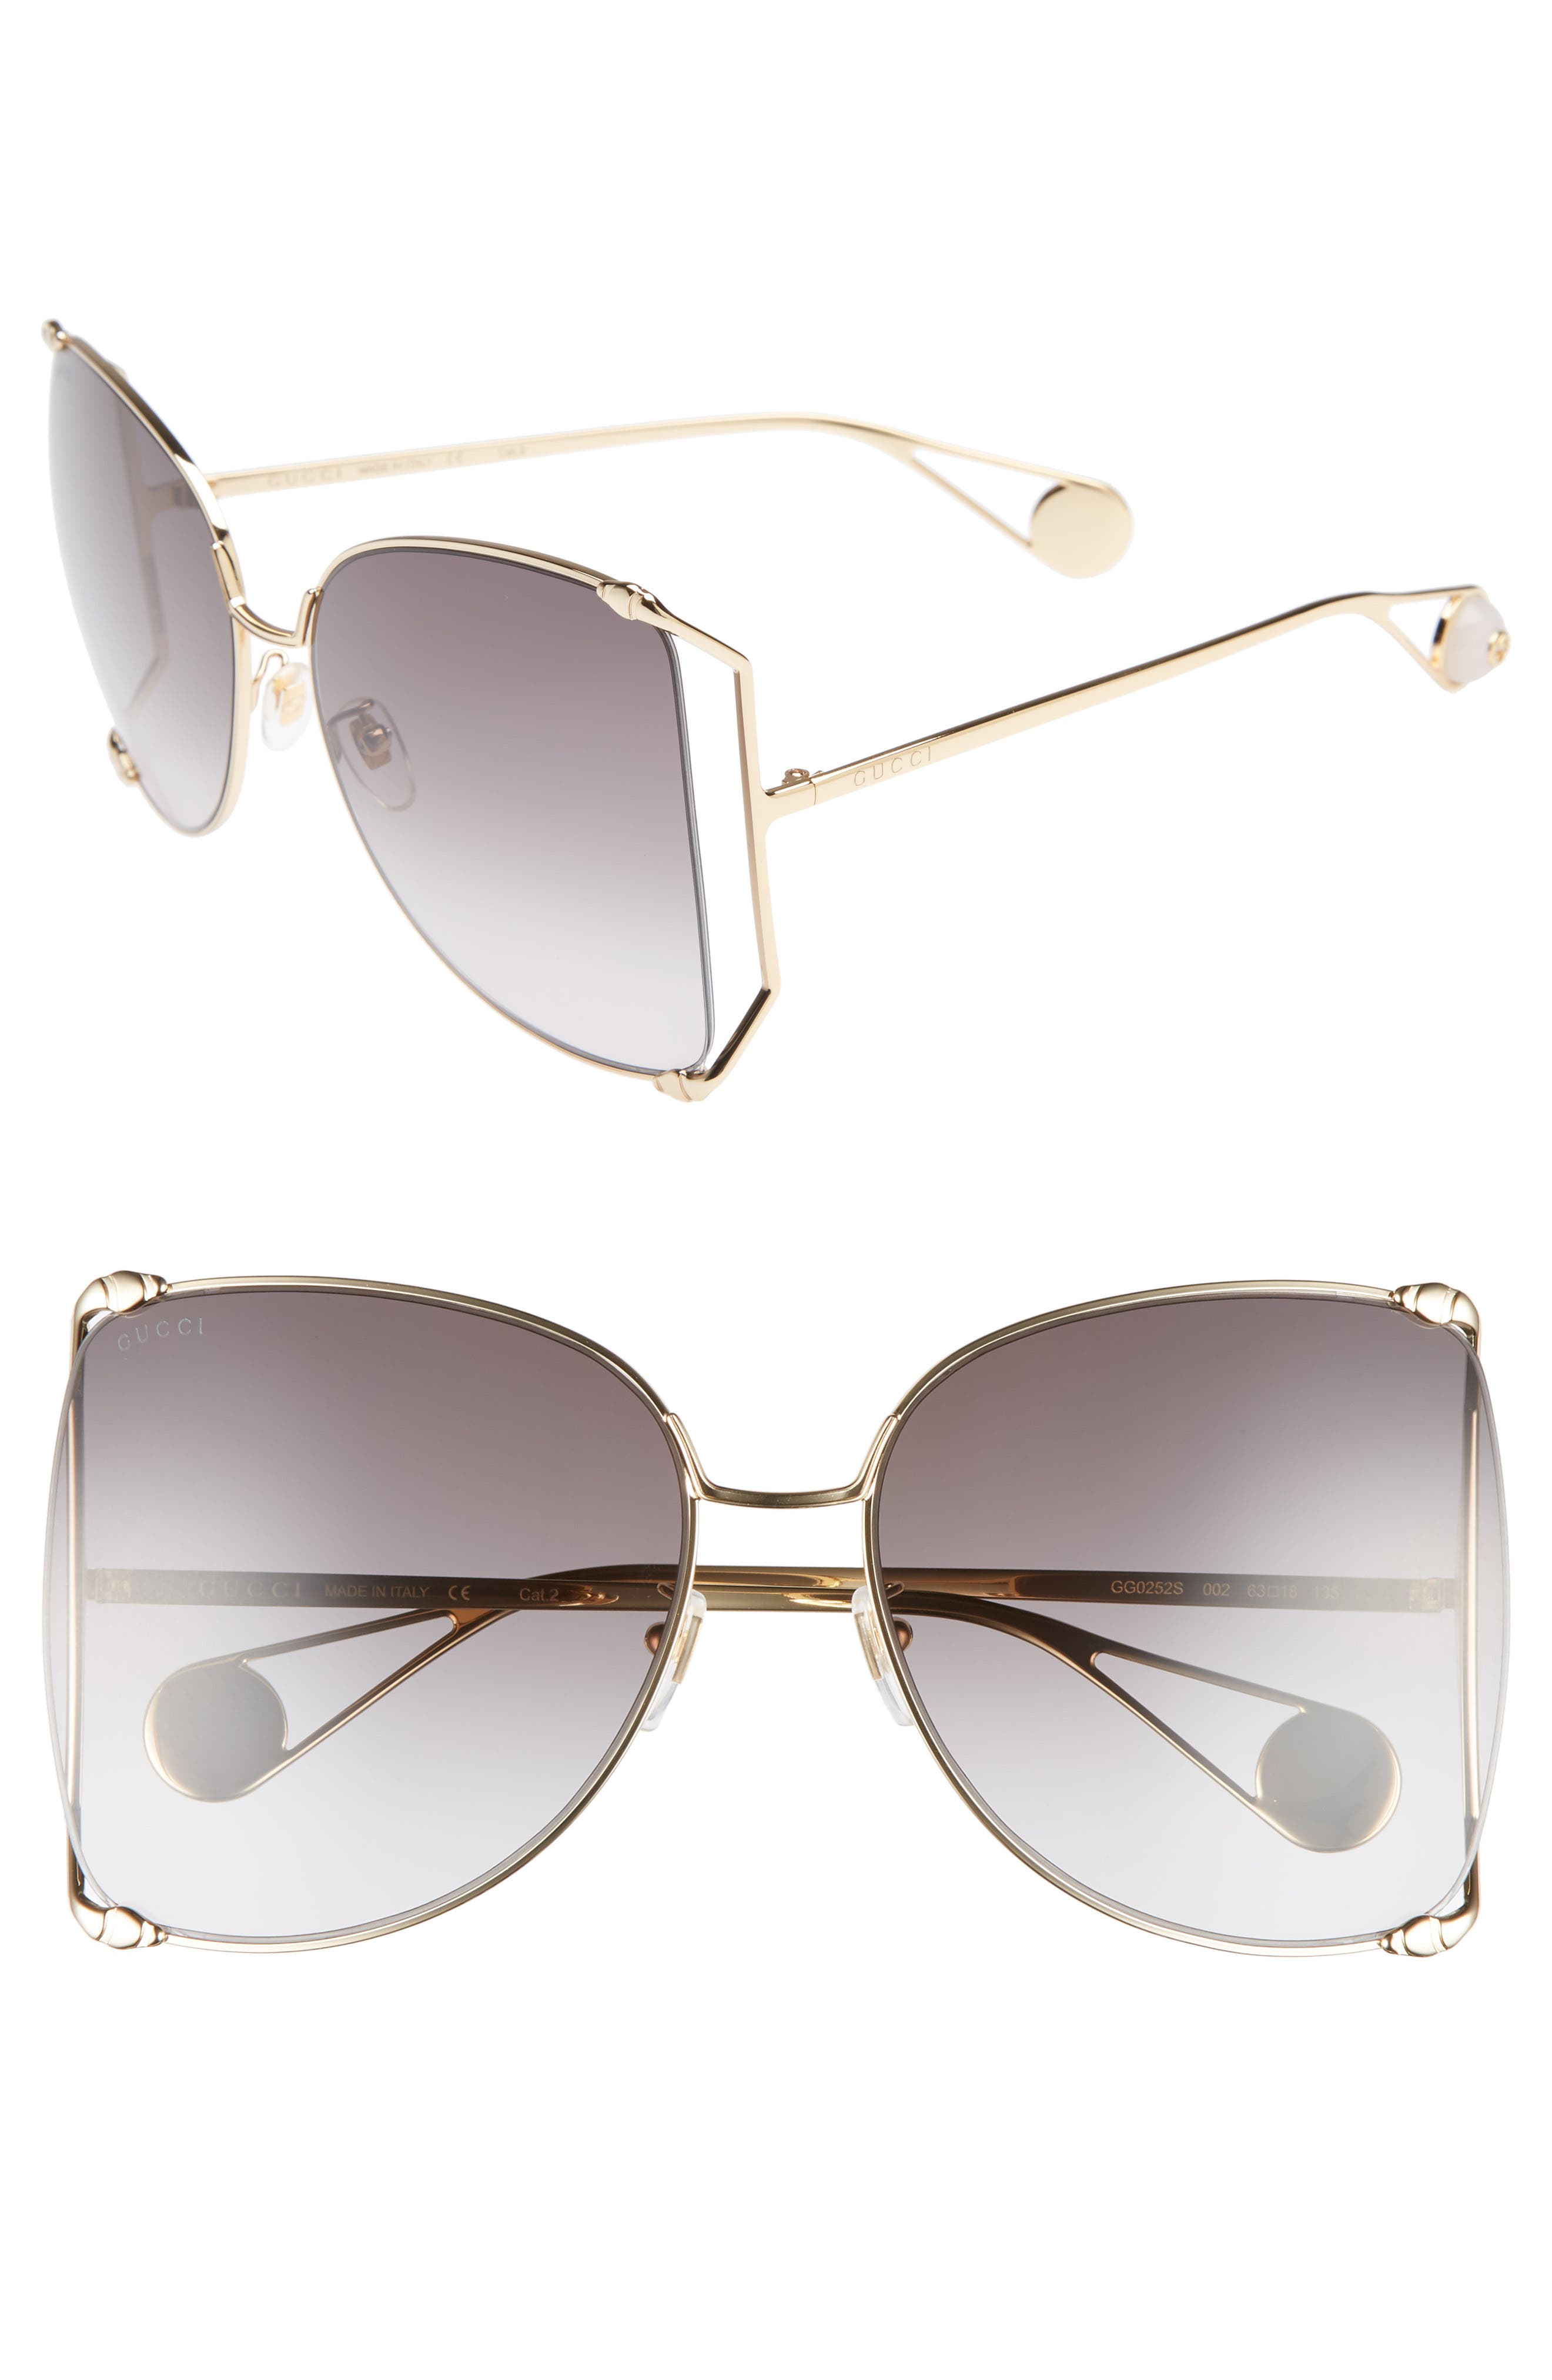 63mm Gradient Oversize Butterfly Sunglasses,                             Main thumbnail 1, color,                             GOLD/ GRADIENT GREY